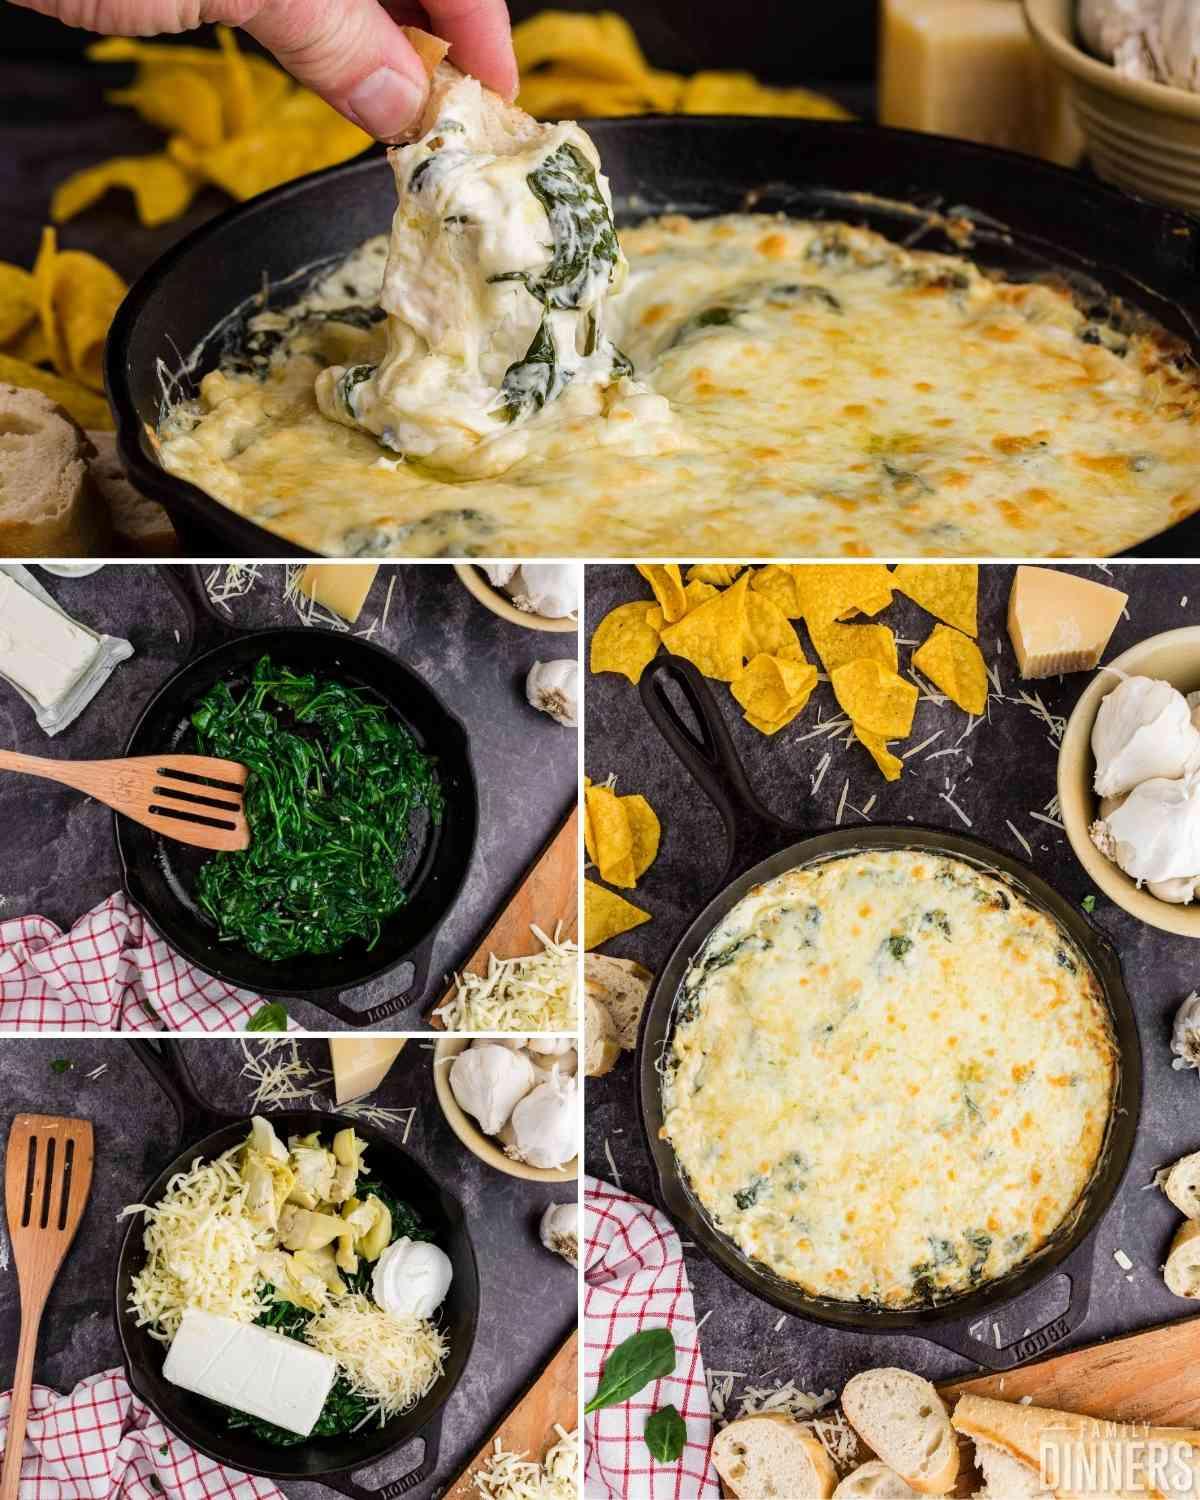 hot spinach dip collage - spinach being sauteed, cheese ingredients added to spinach, baked hot artichoke and spinach dip and bread dipped into dip.